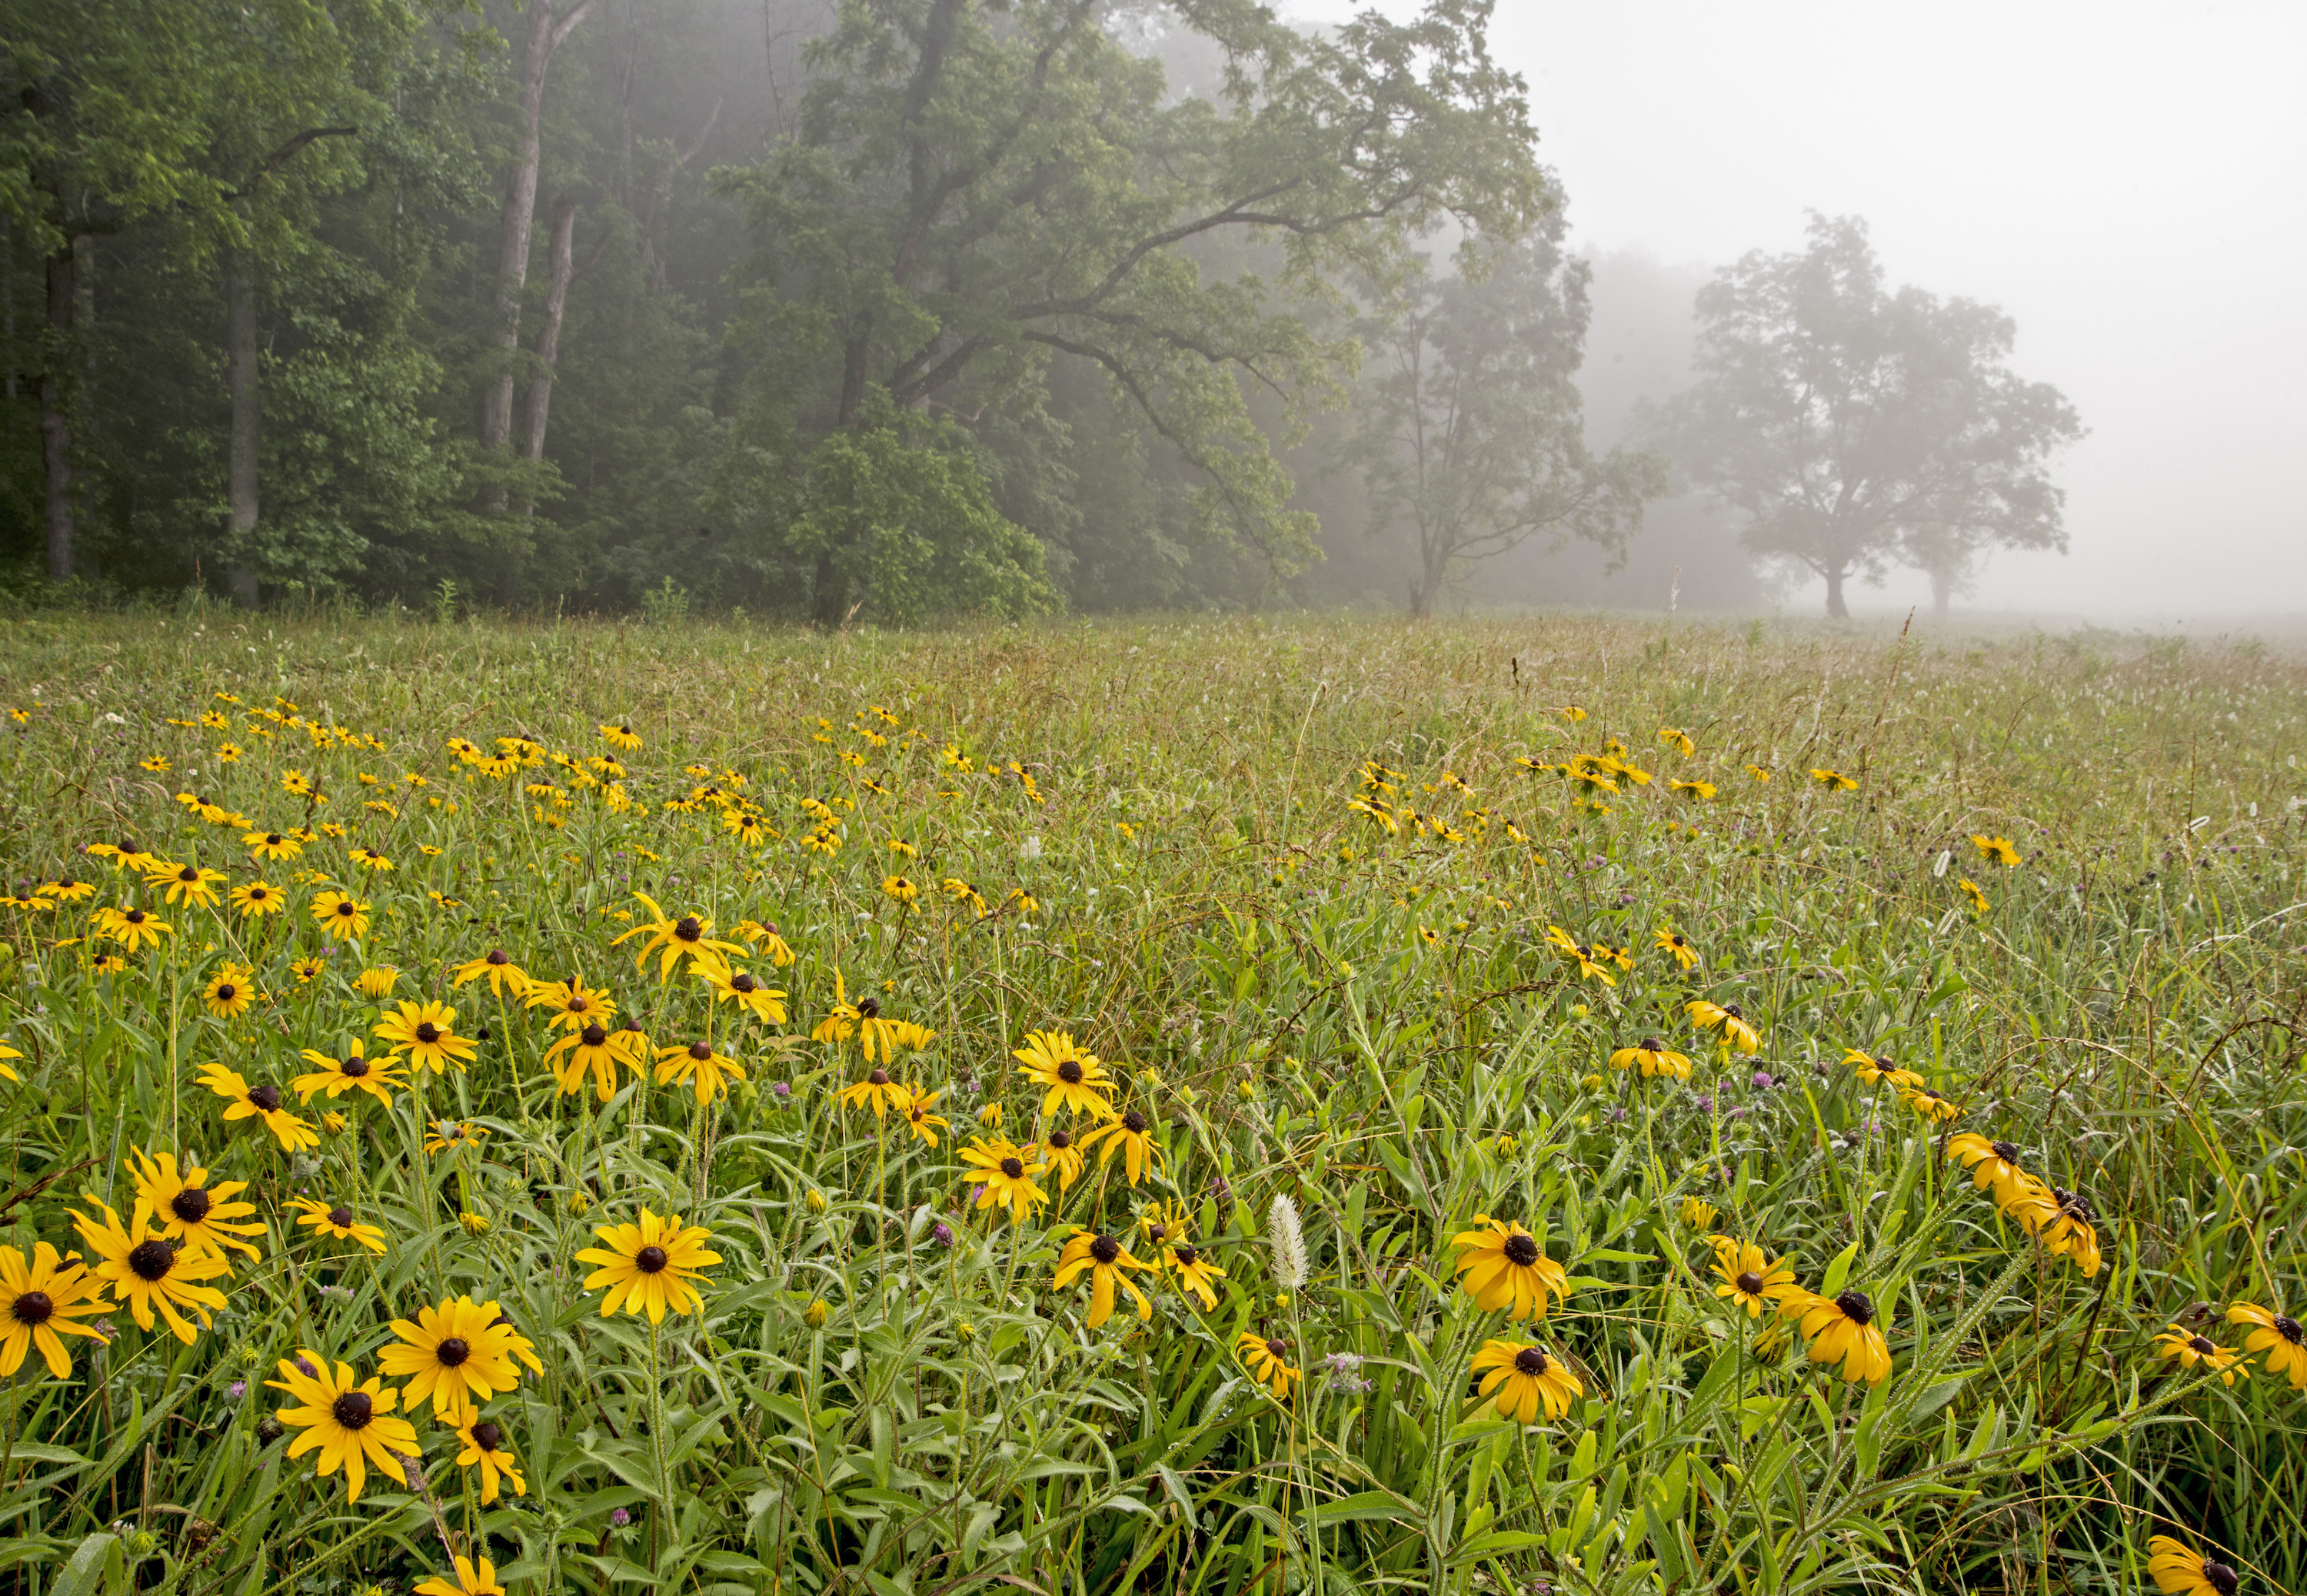 Black Eyed Susans cover a field at dawn in Cades Cove.